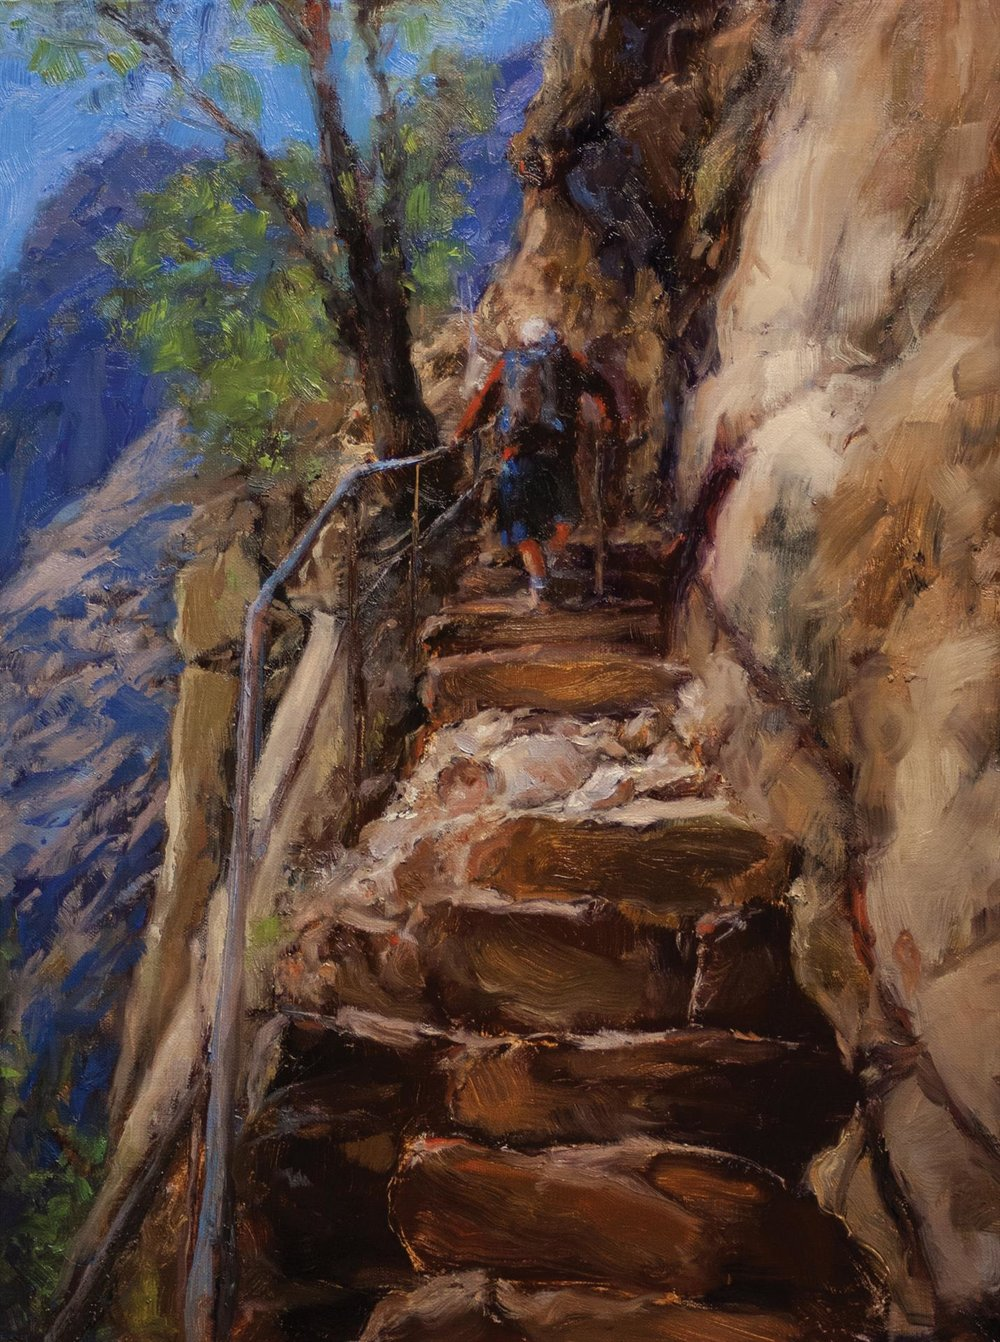 Stairway to Heaven, James Swanson